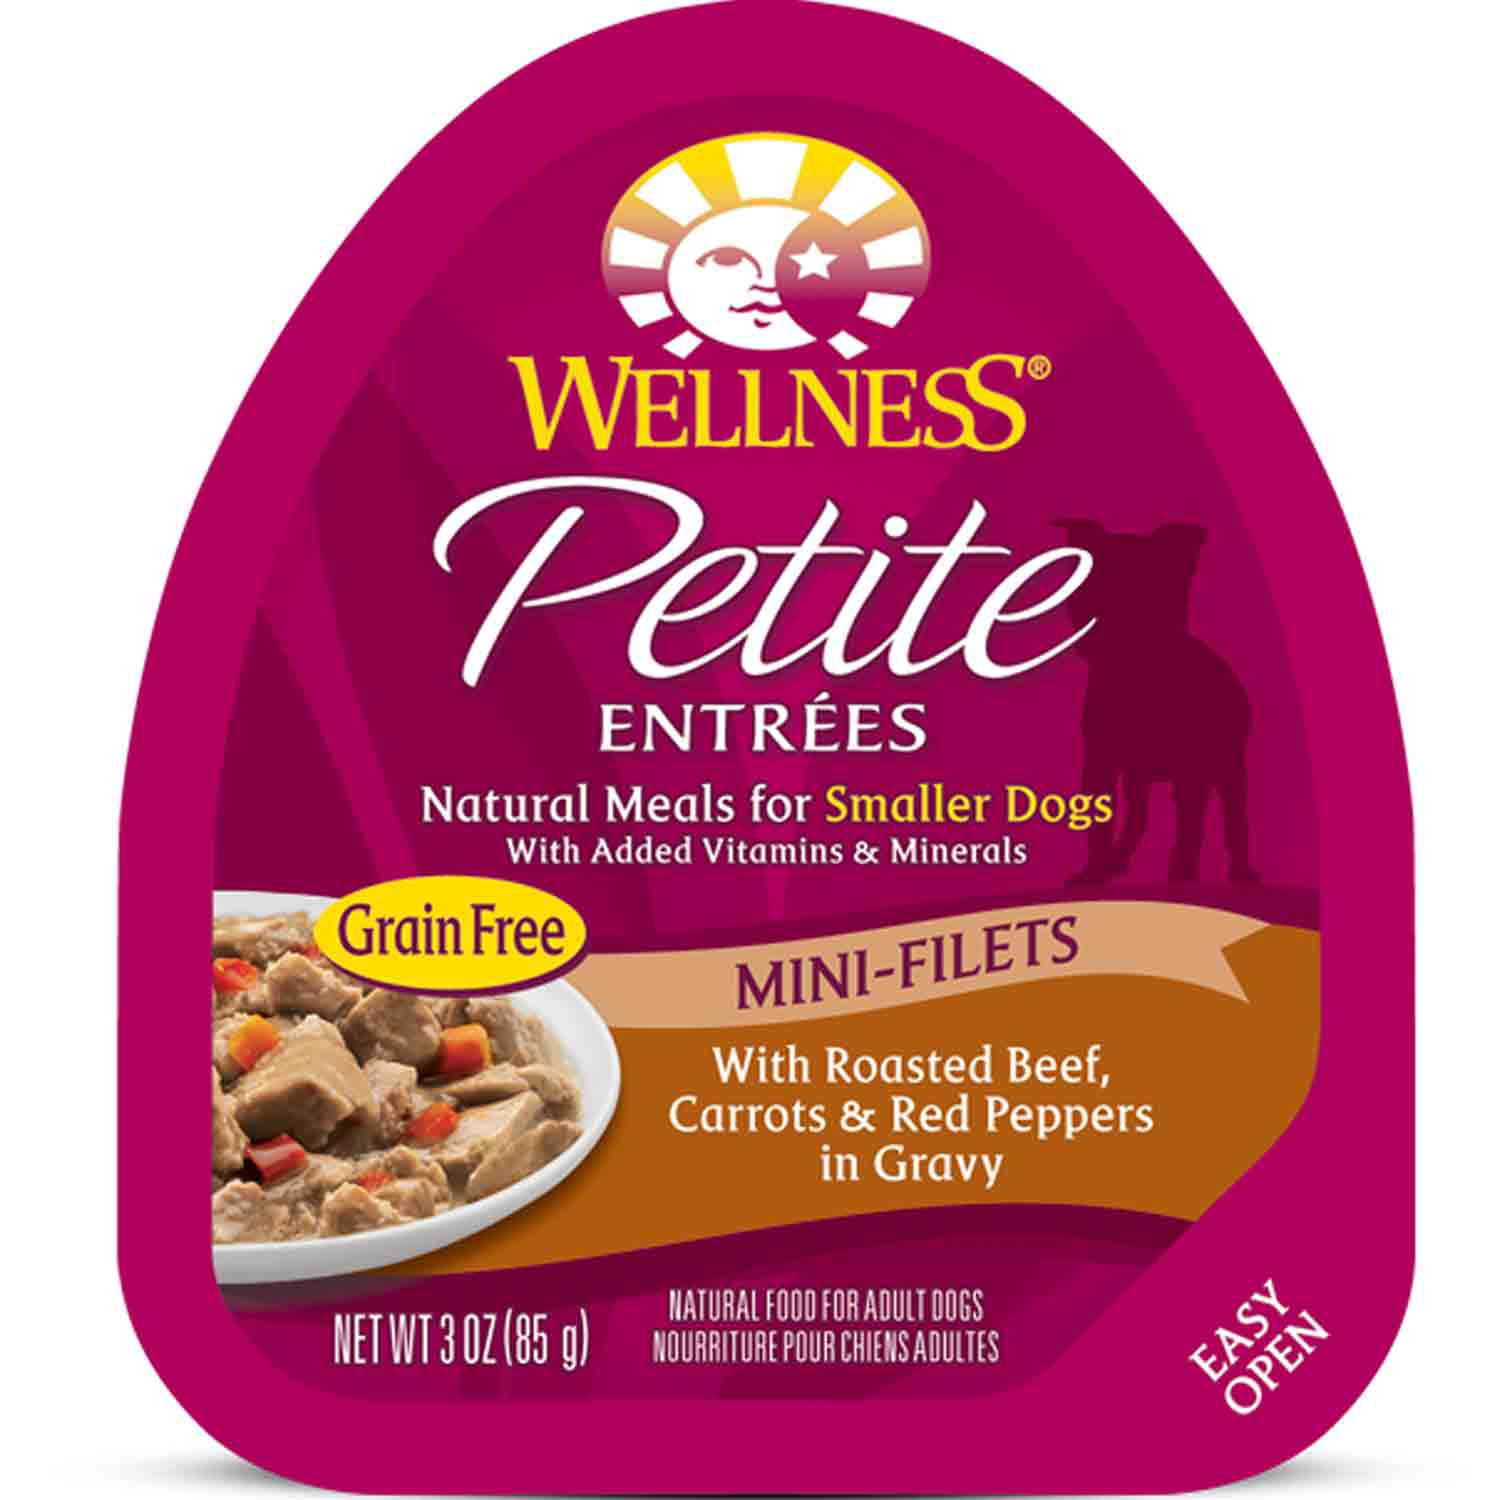 Wellness Petite Entrees Mini-Filets Roasted Beef, Carrots & Red Peppers in Gravy Dog Food